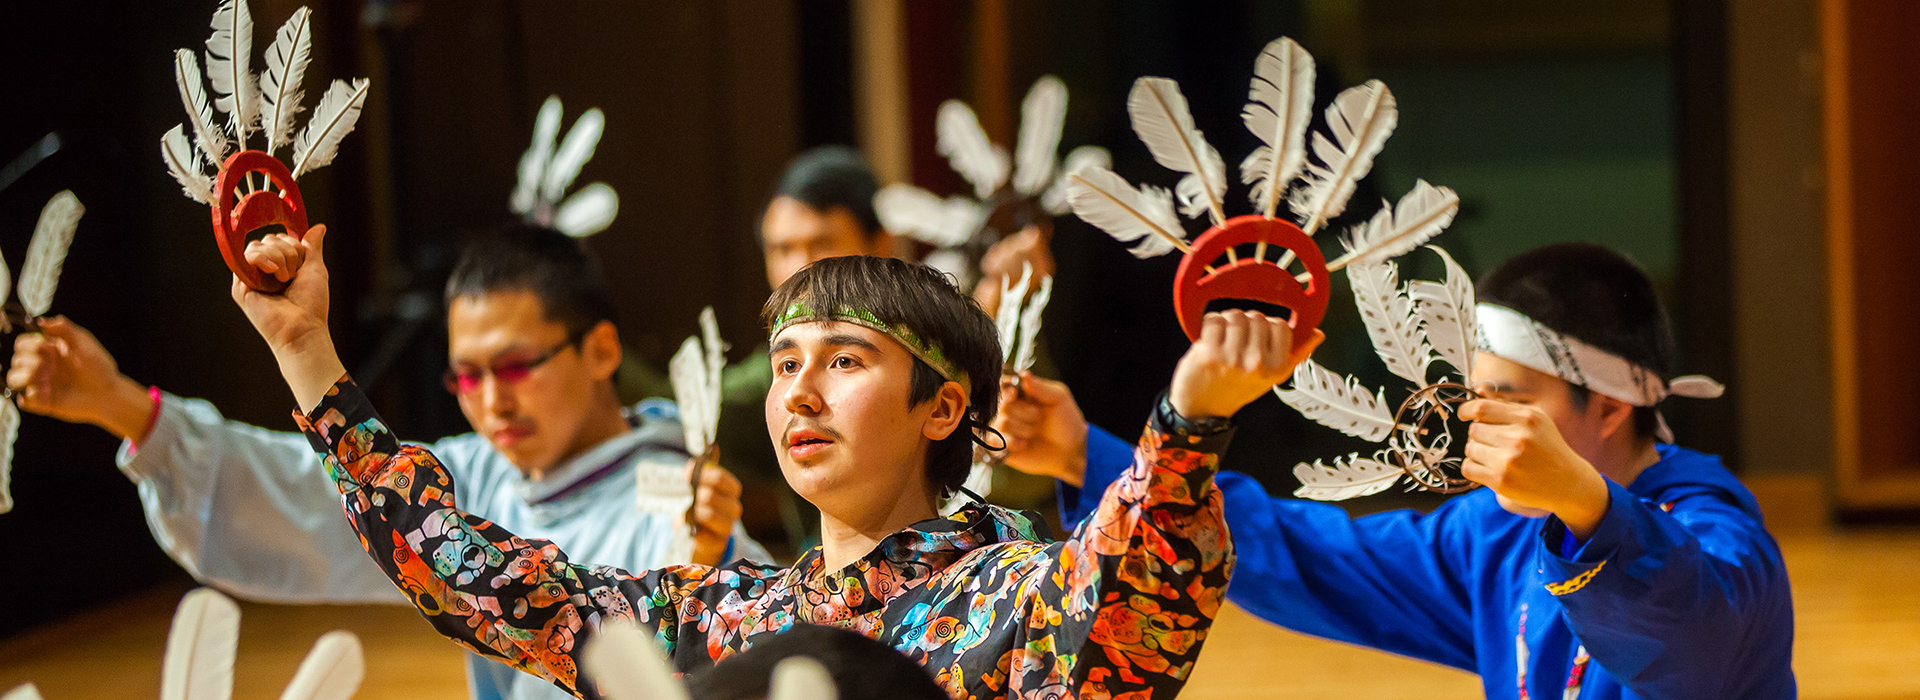 Mechanical Engineering Major, Baxter Bond, performs with the Inu-Yupiaq dance group during the 2013 Festival of Native Arts. Credit: UAF Photo by JR Ancheta